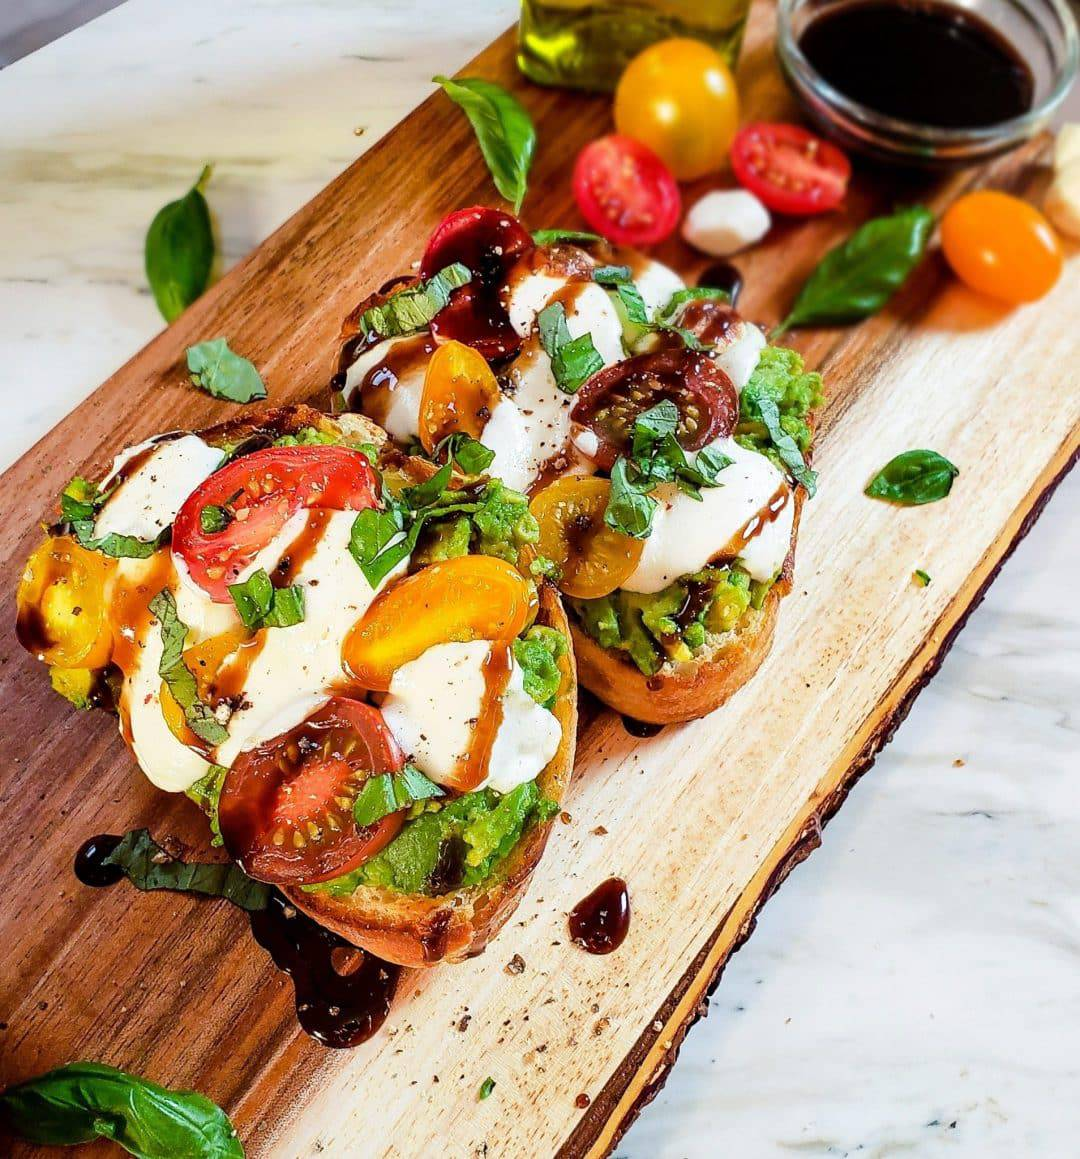 A picture of caprese avocado toast. There are two pieces of toast with mashed avocado, cherry tomatoes, mozzarella, balsamic glaze and fresh tomatoes on top.